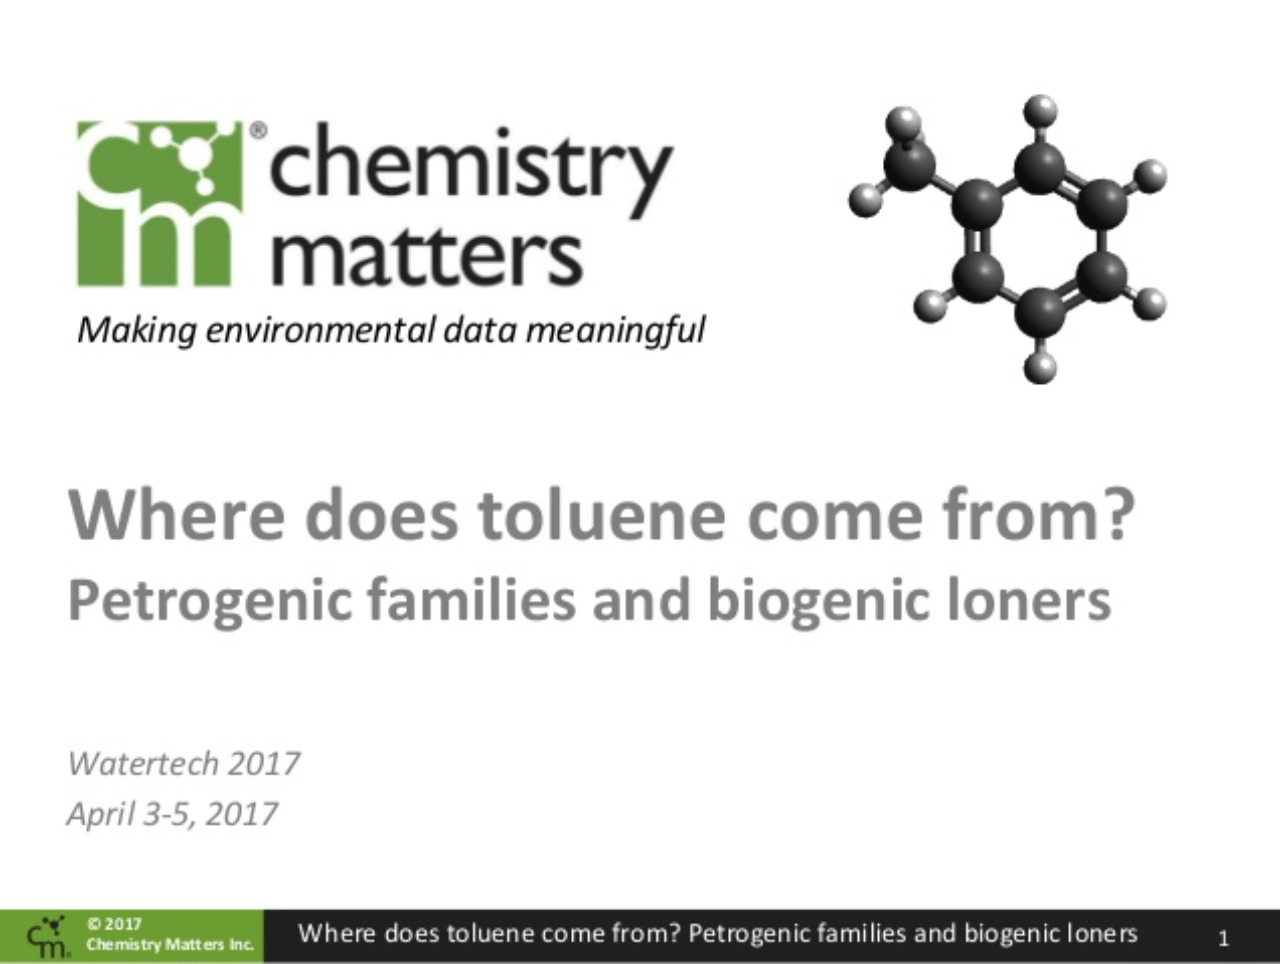 Where Does Toluene Come From? Toluene, Petrogenic Families And Biogenic Loners